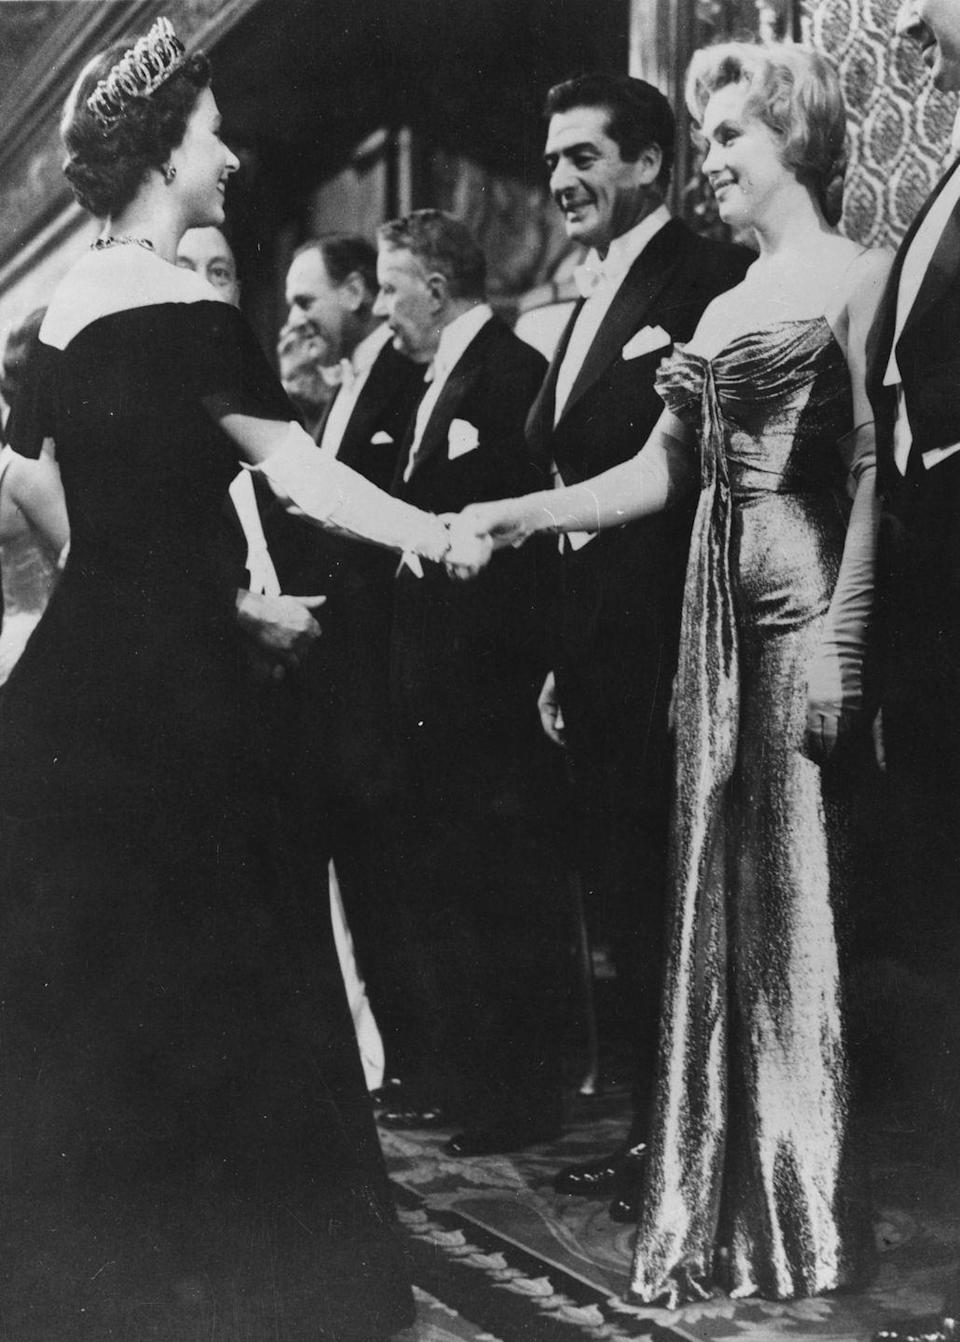 <p>For her royal moment, Marilyn Monroe opted for a strapless gown with elbow-high silk gloves. Sexy, of course, but tasteful too.</p>